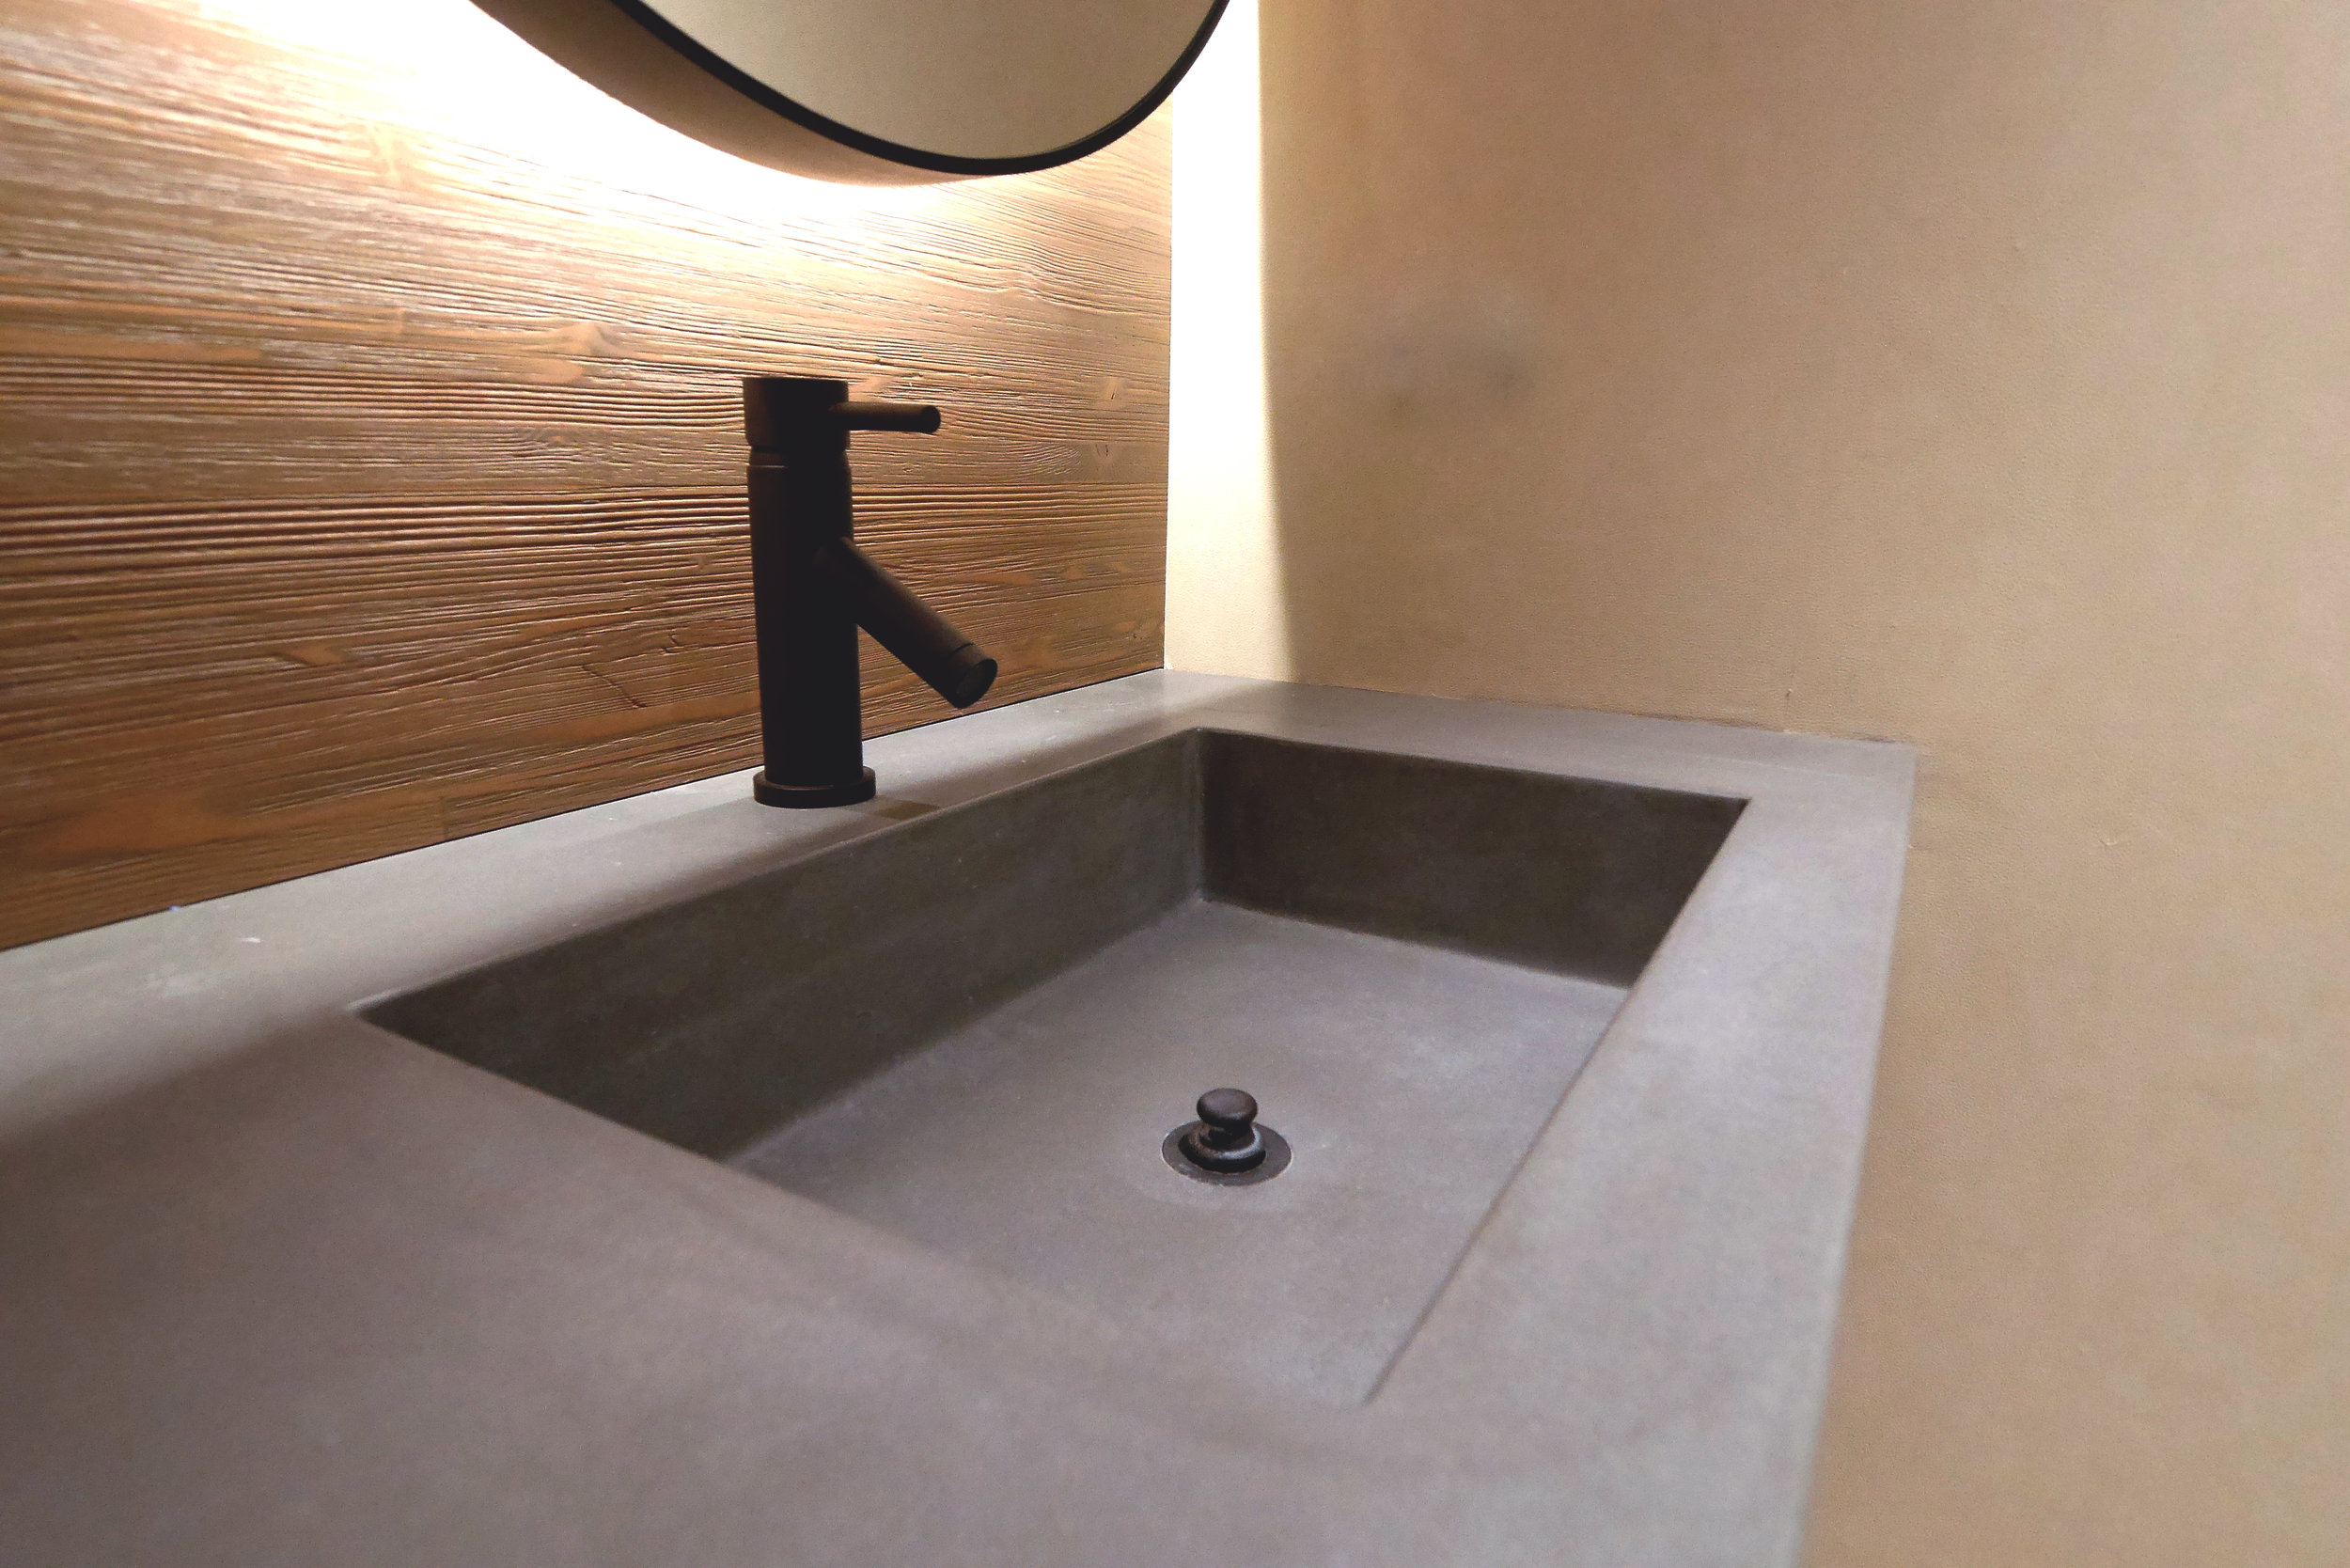 Small Concrete Trough Sink.jpg